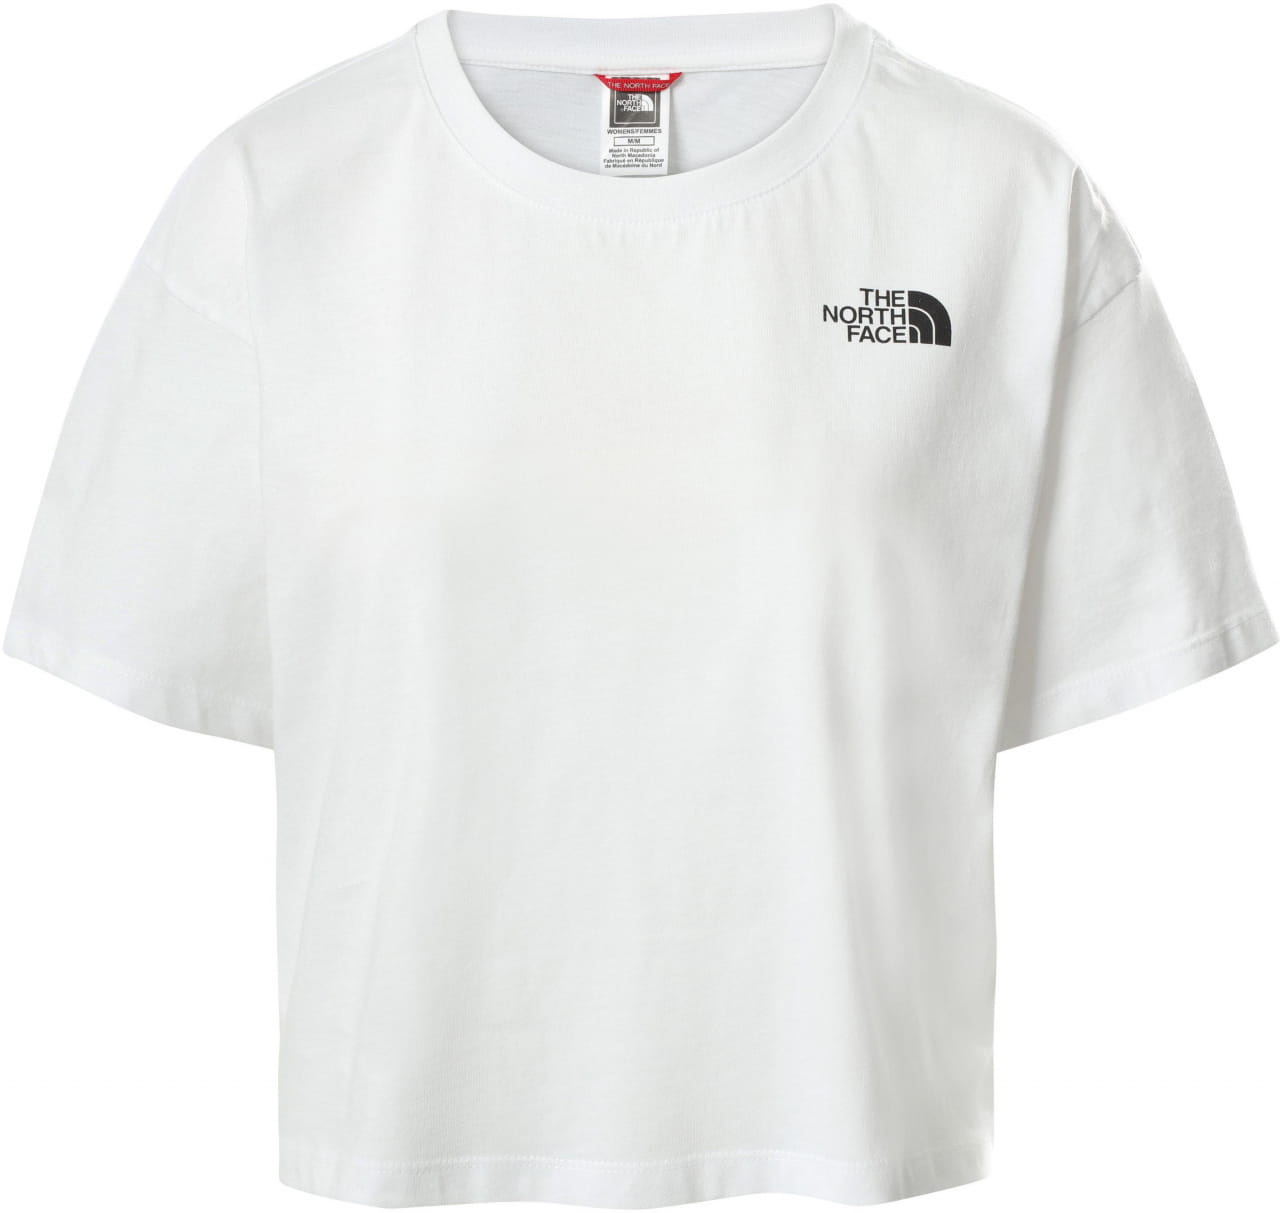 Dámské zkrácené tričko The North Face Women's Cropped Simple Dome T-Shirt